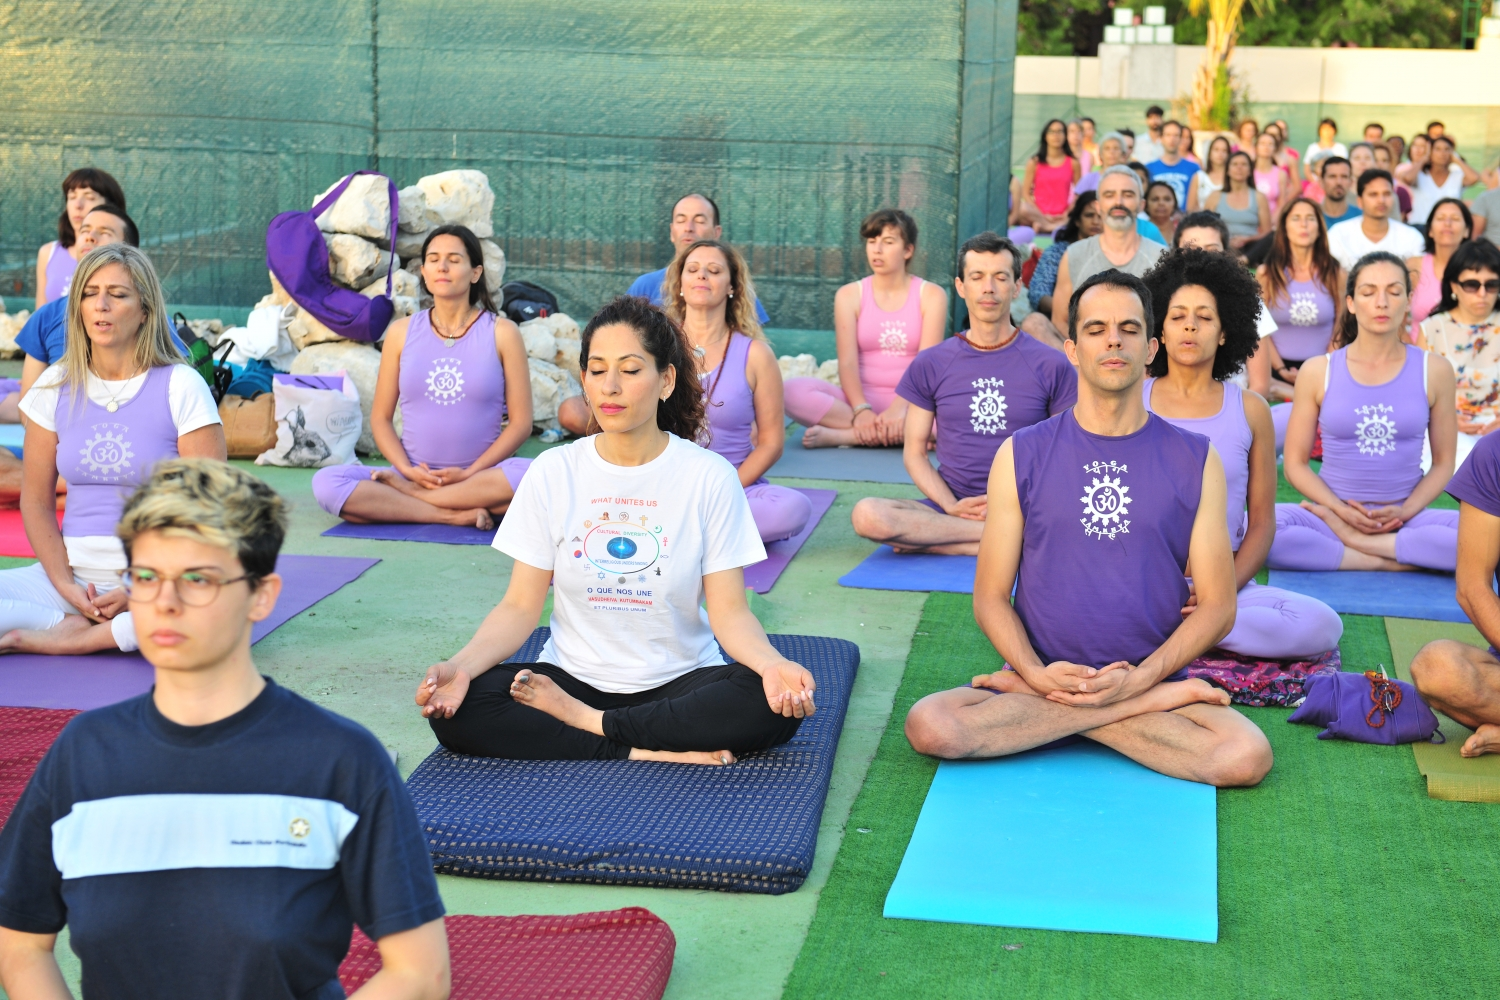 Comemoração do International Day of Yoga - IDY / Dia Internacional do Yoga - 2017 - Lisboa, Comunidade Hindu